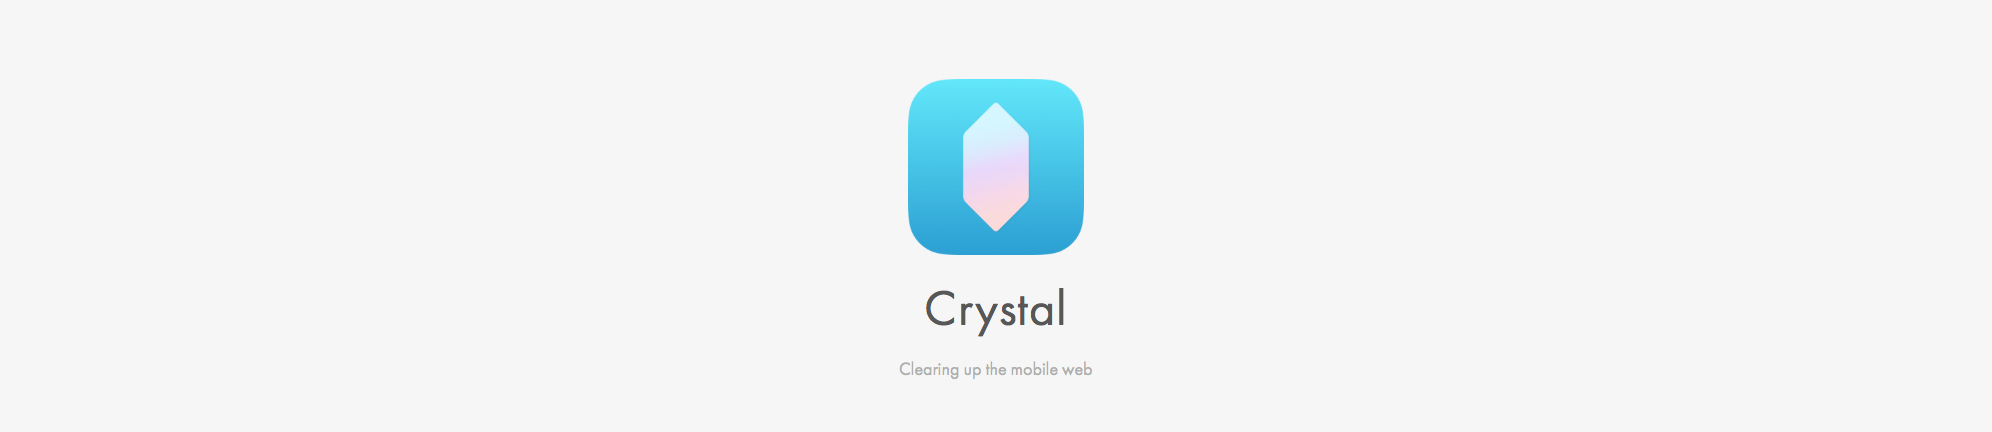 Say goodbye to ads in iOS 9 with the new Crystal app for Safari